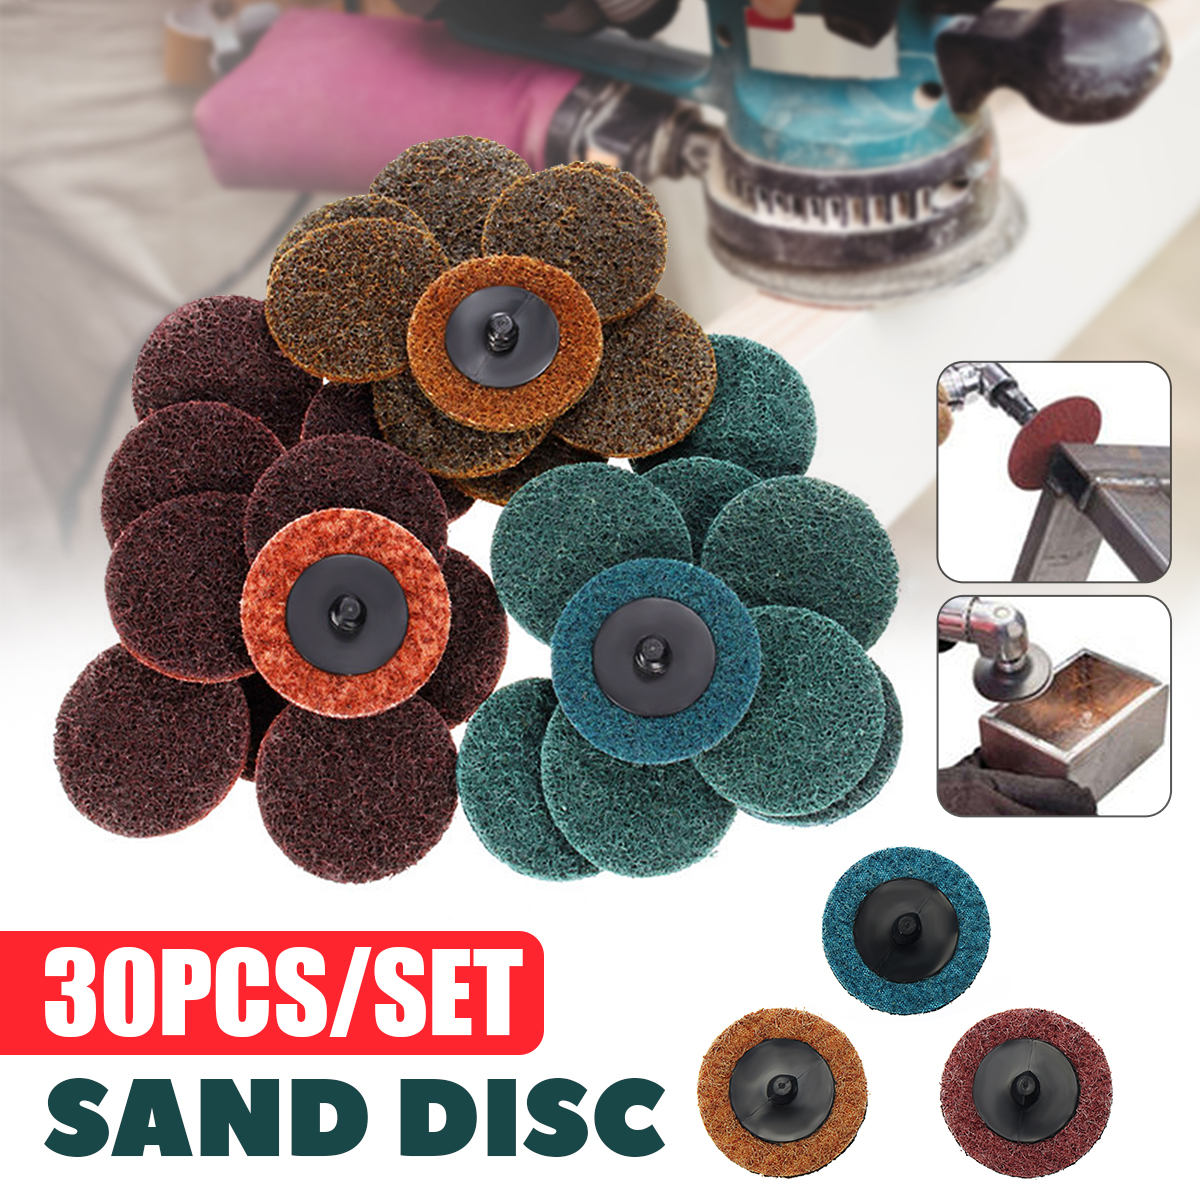 30 X 2 Sanding Roloc Roll Disc Surface Conditioning Fine Medium Coarse Prep Pad Colors 25,000 RPM Prep Gasket Coating Removal